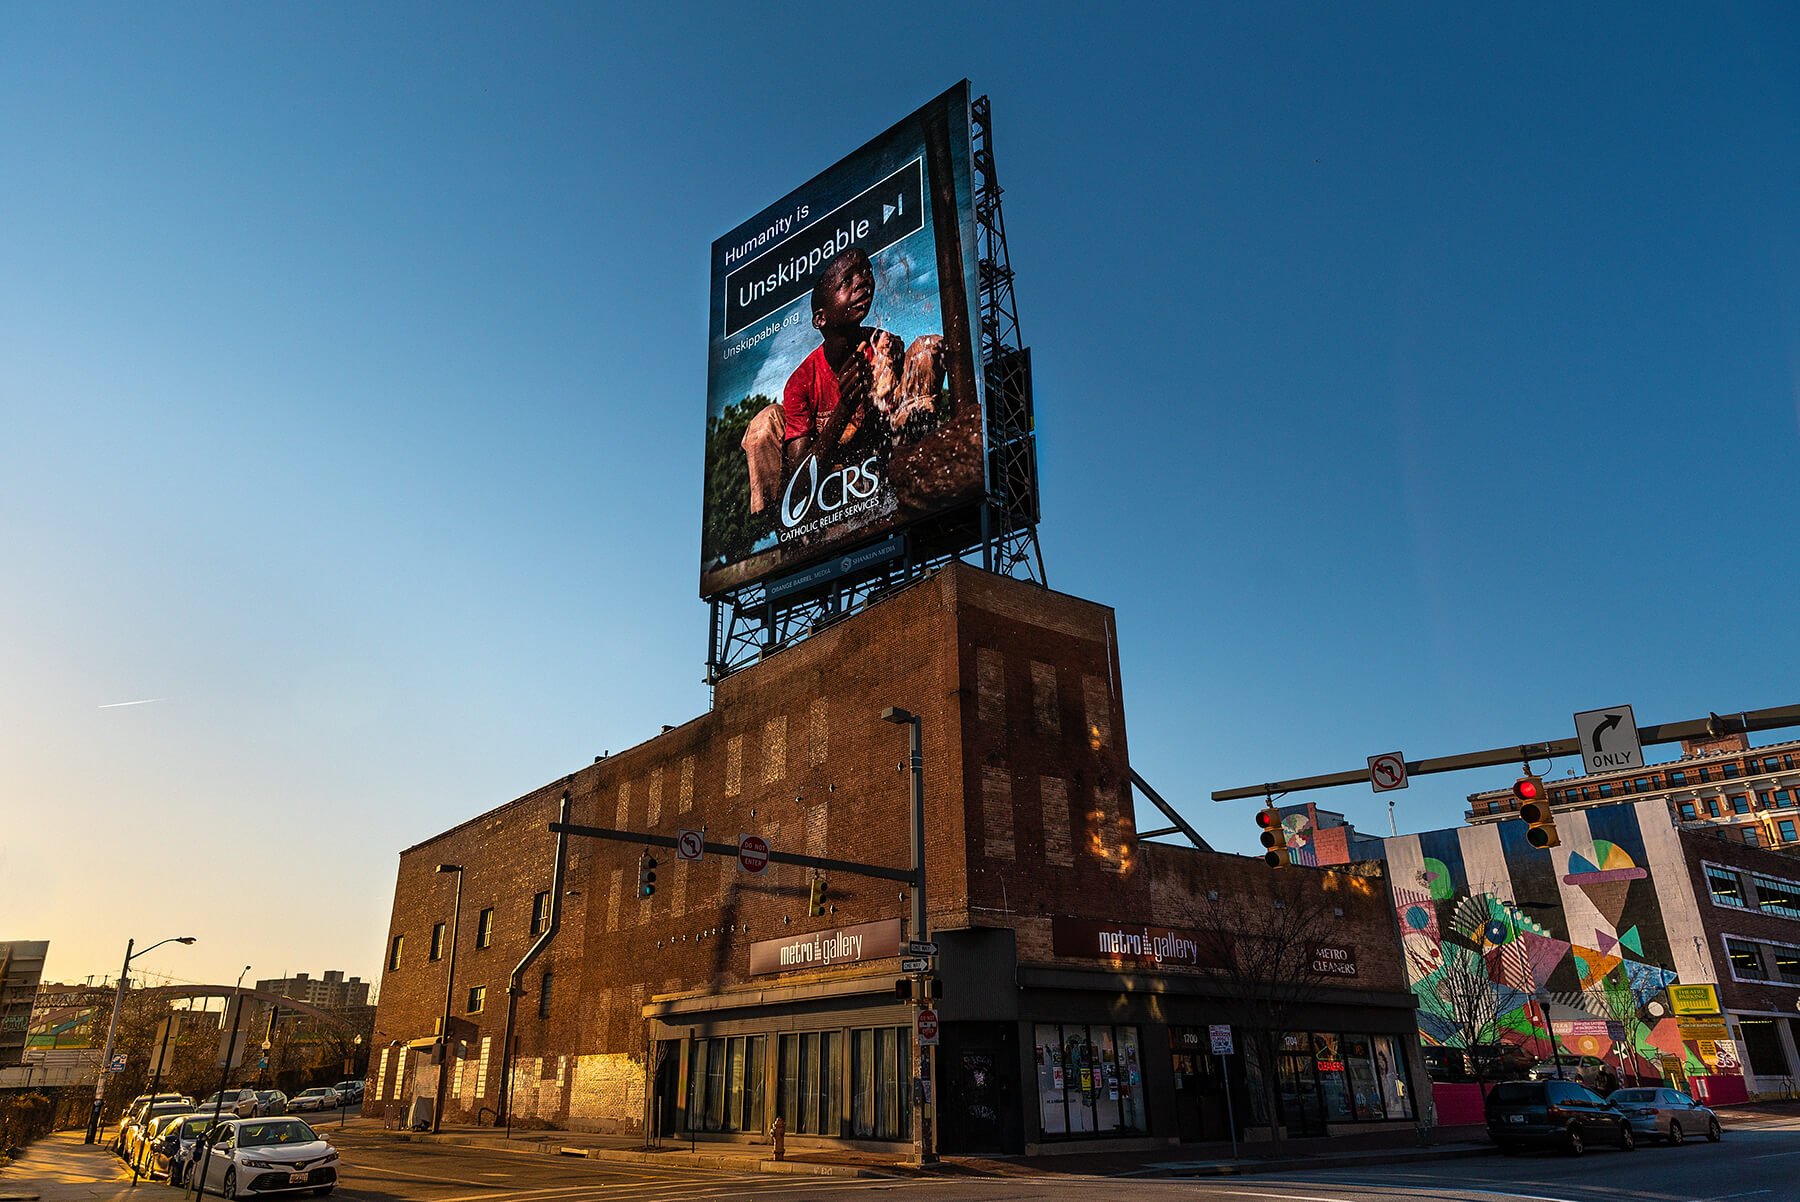 catholic relief services unskippable billboard in baltimore, part of the unskippable marketing campaign